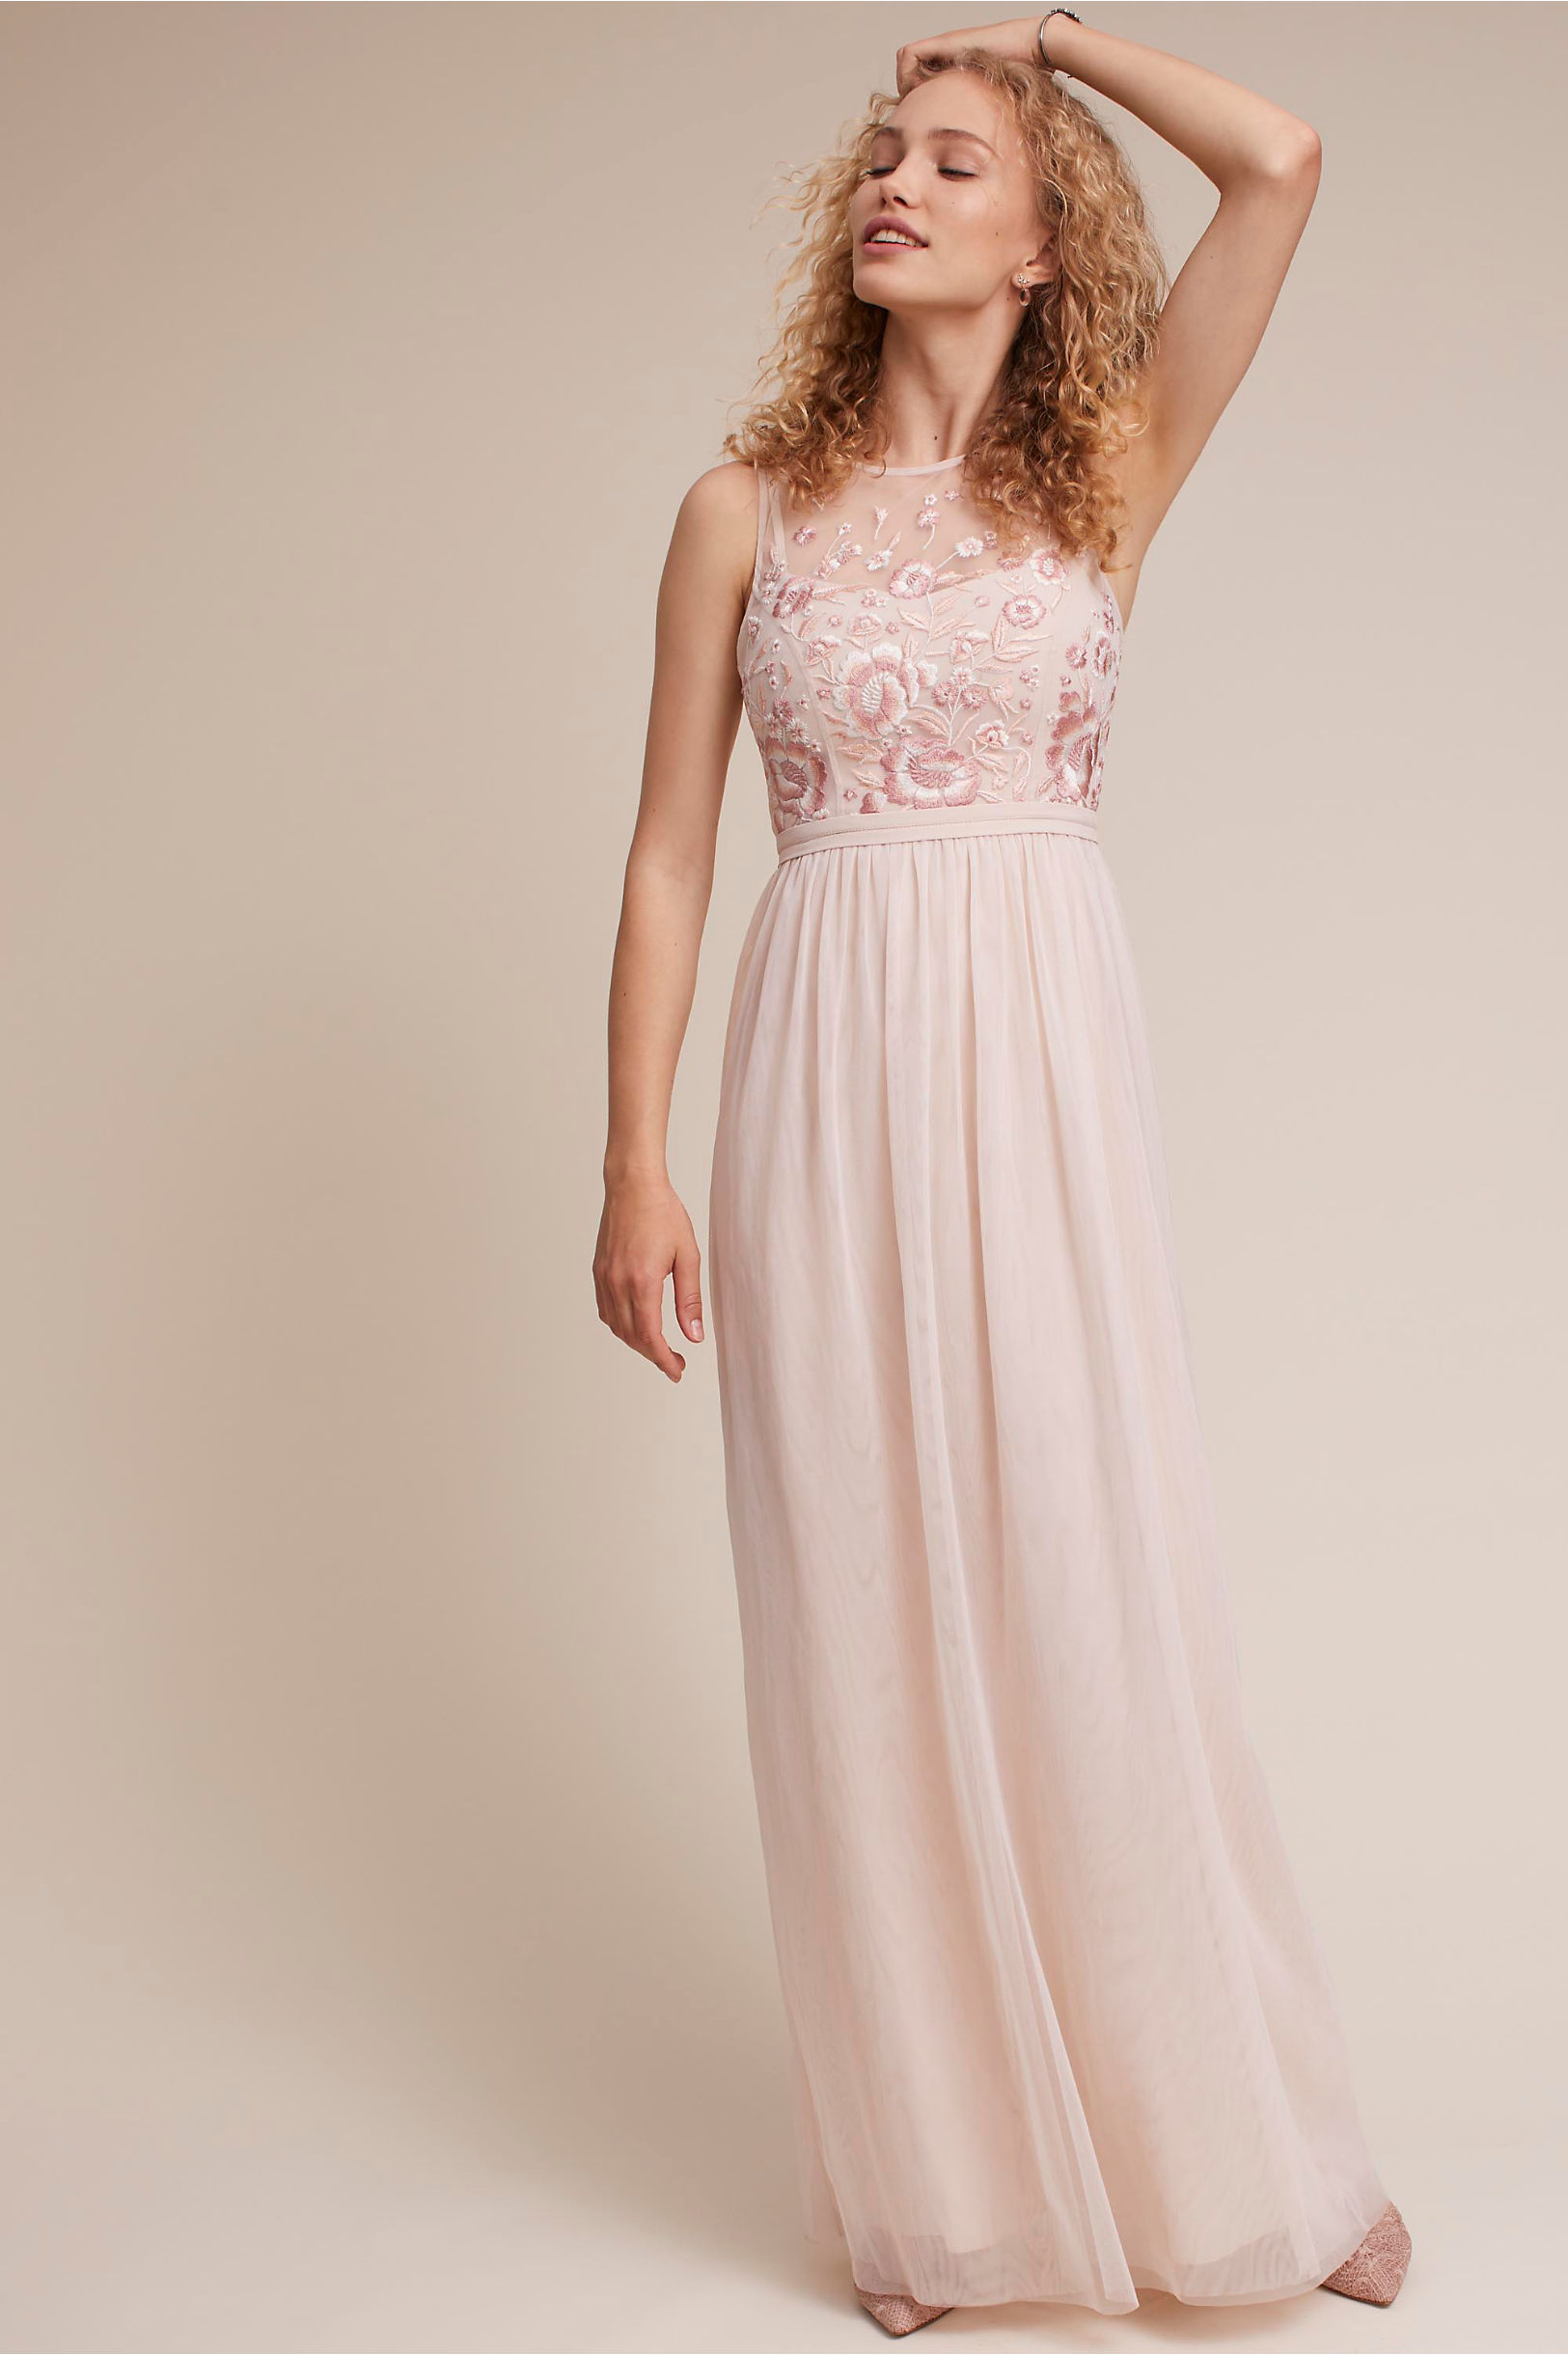 757e7a46f22 Baldwin Dress Cinnamon Rose in Bridesmaids   Bridal Party